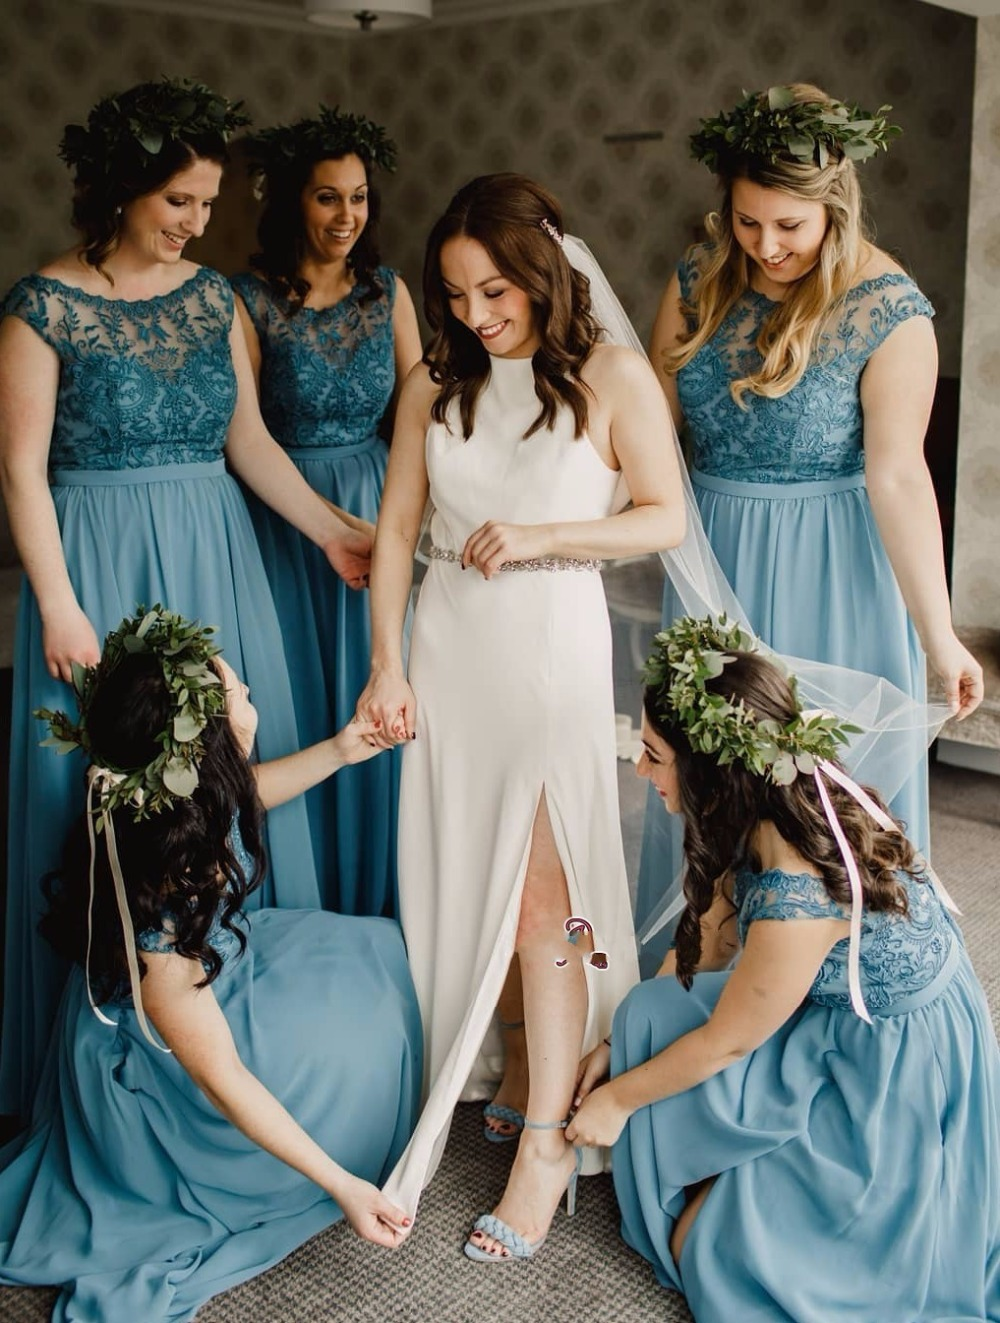 Modest A-line Bridesmaid Dress Long 2019 Lace High Neck Chiffon Wedding Party Prom Gown